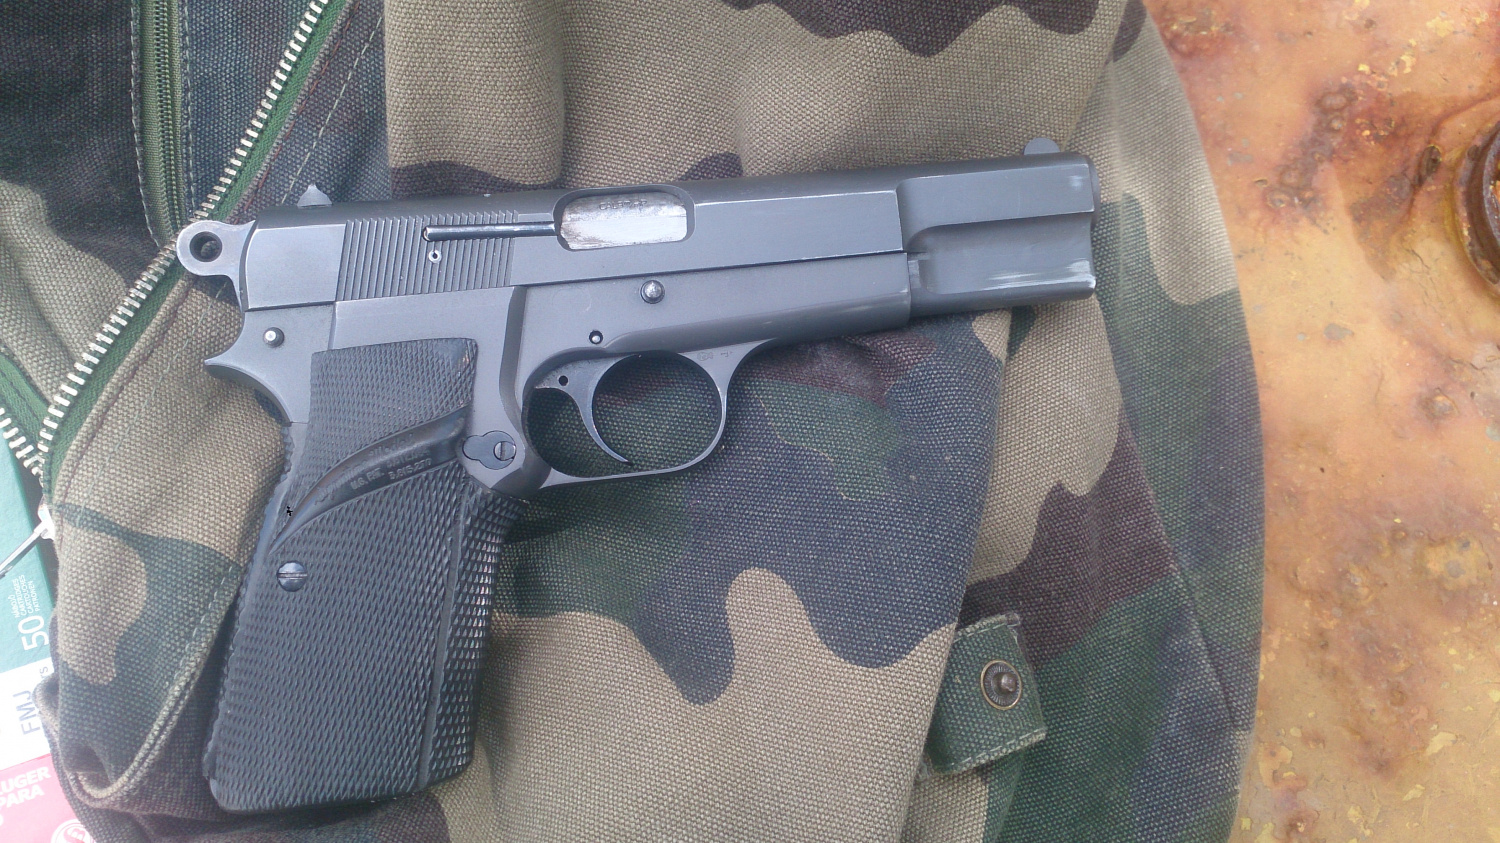 A friend's Browning HP pistol that kept author safe in some parts of South Africa.